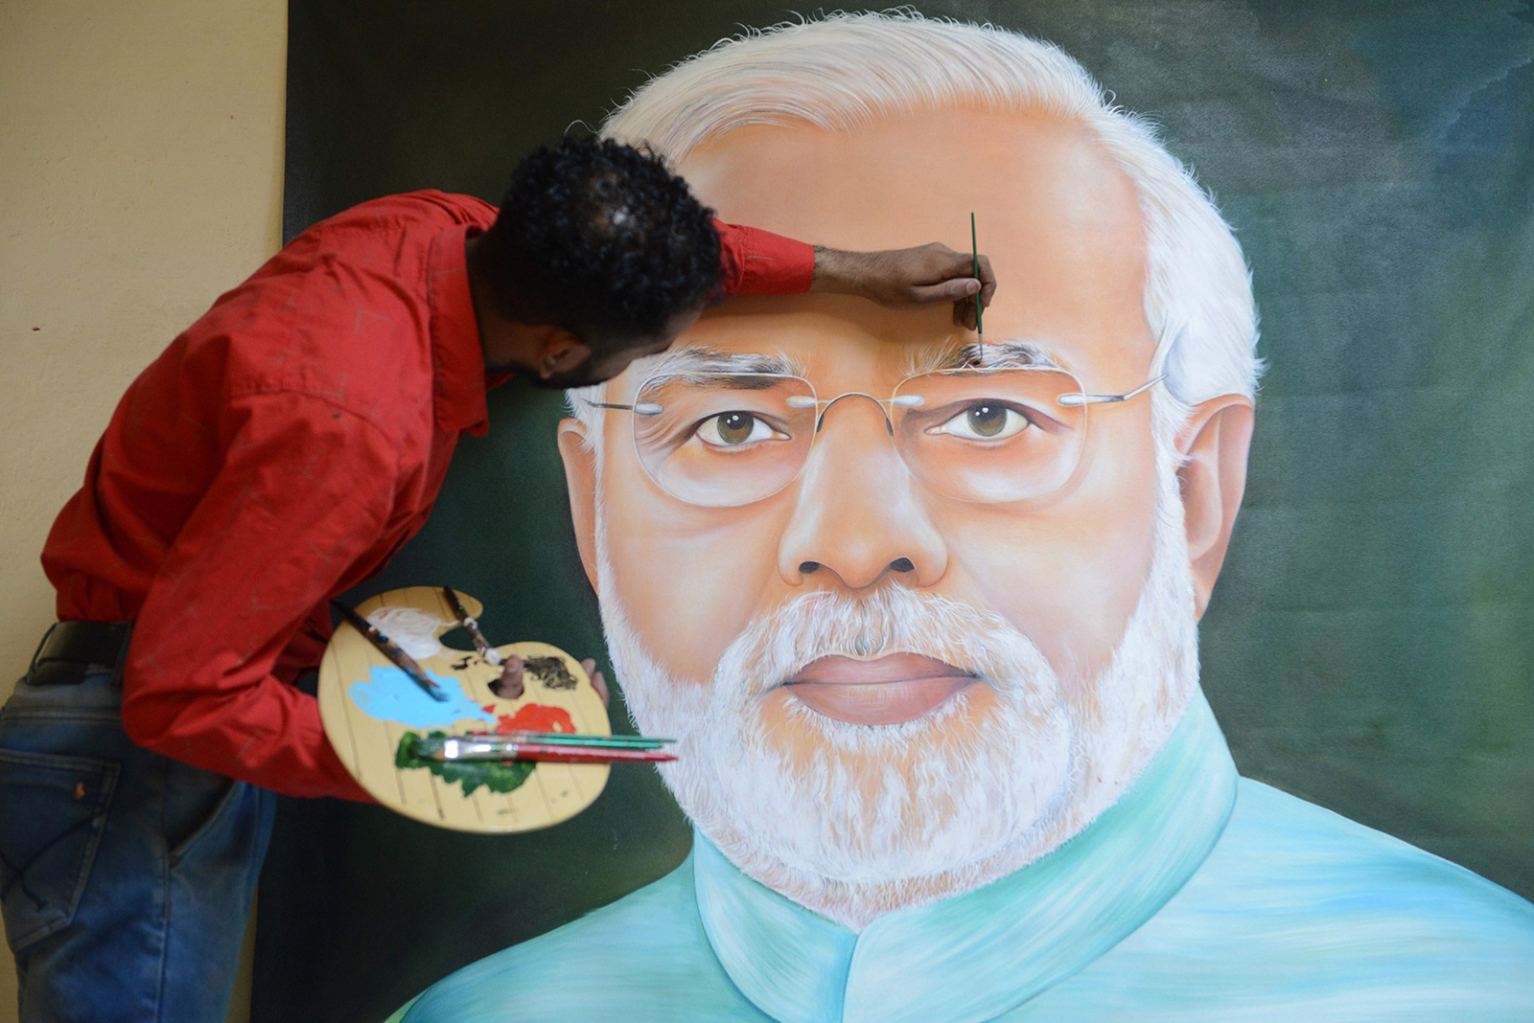 Indian painter Jagjot Singh Rubal puts the final touches on a painting of Indian Prime Minister Narendra Modi in Amritsar on May 29. NARINDER NANU/AFP/Getty Images